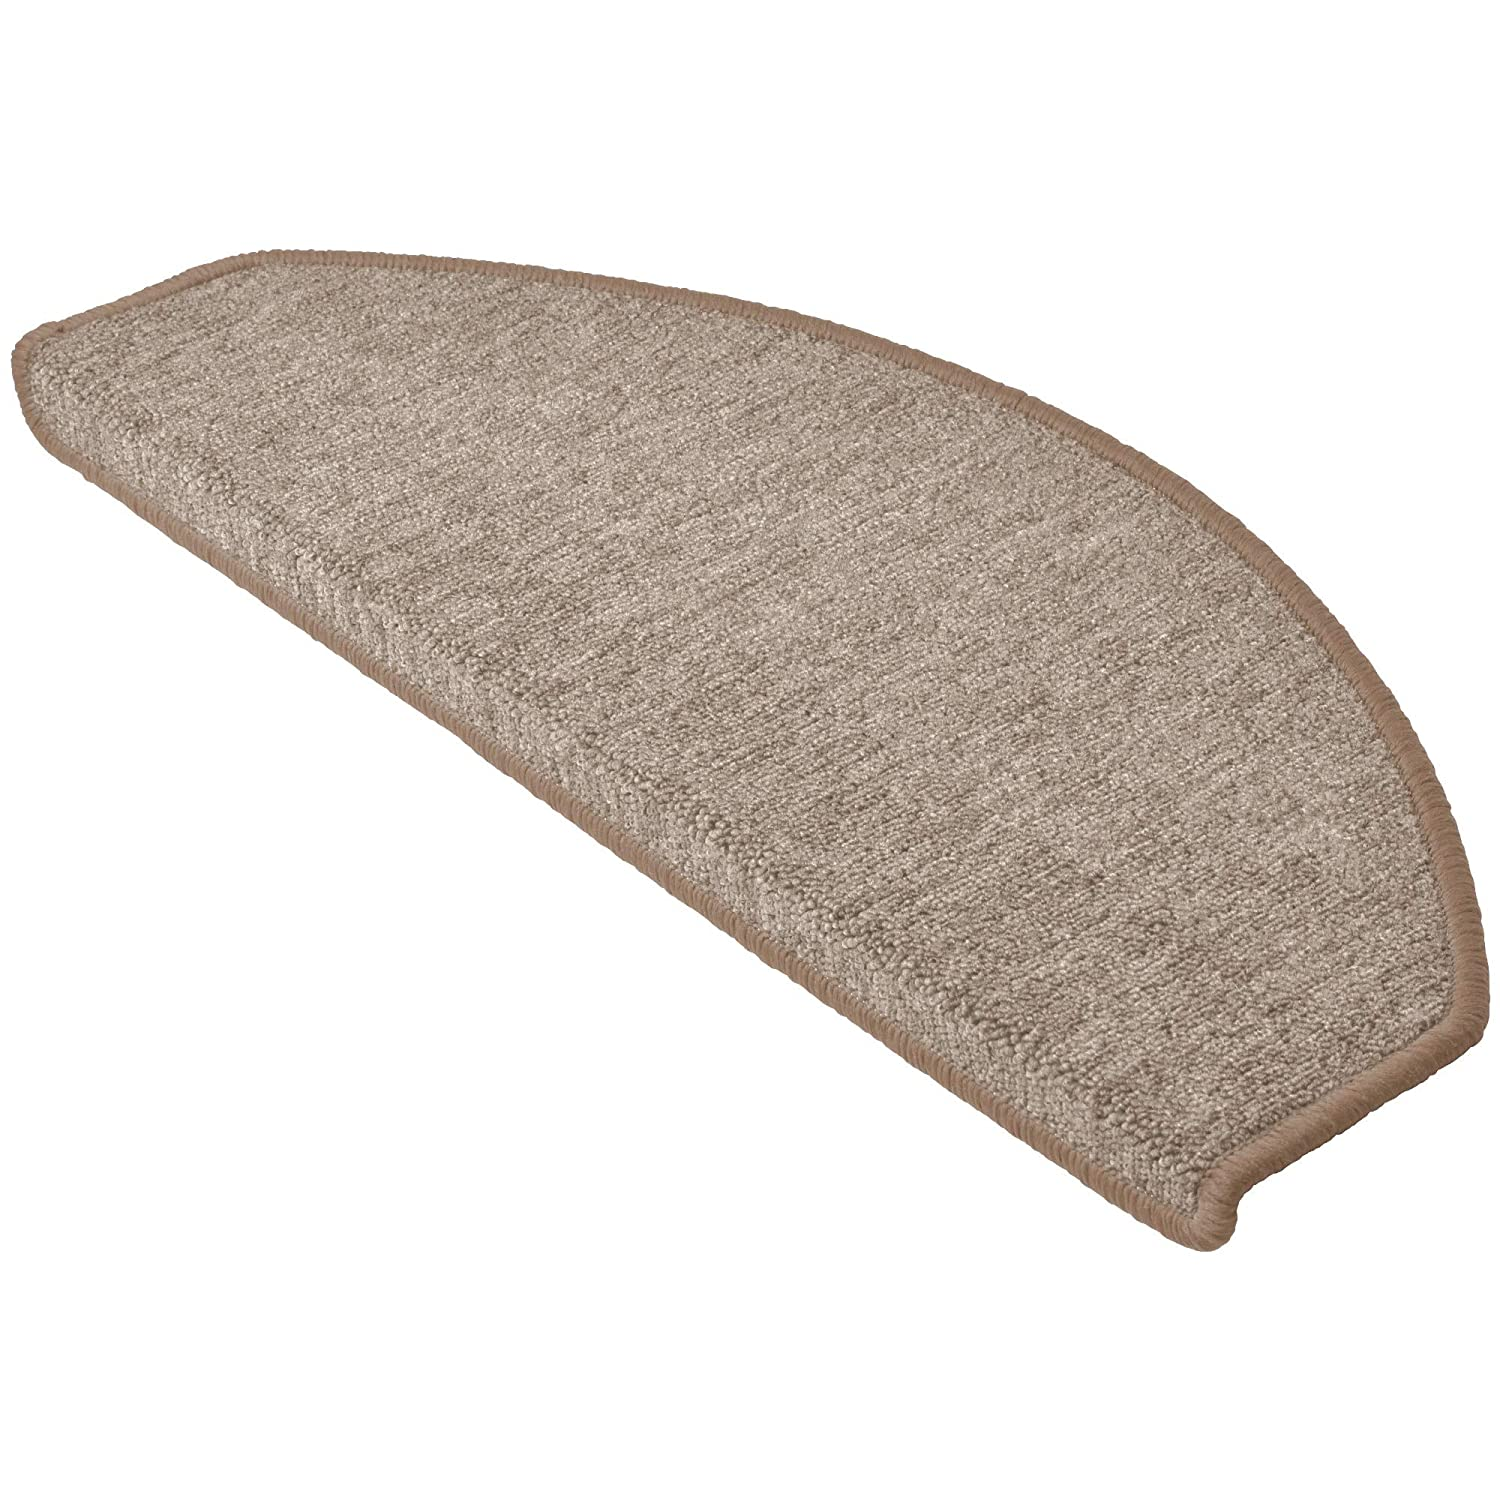 Beautissu 15 Large Stair Pads ProStair 28 x 65 cm Step Carpet Non Slip Adhesive Mat/Rug for Stair Tread Brown